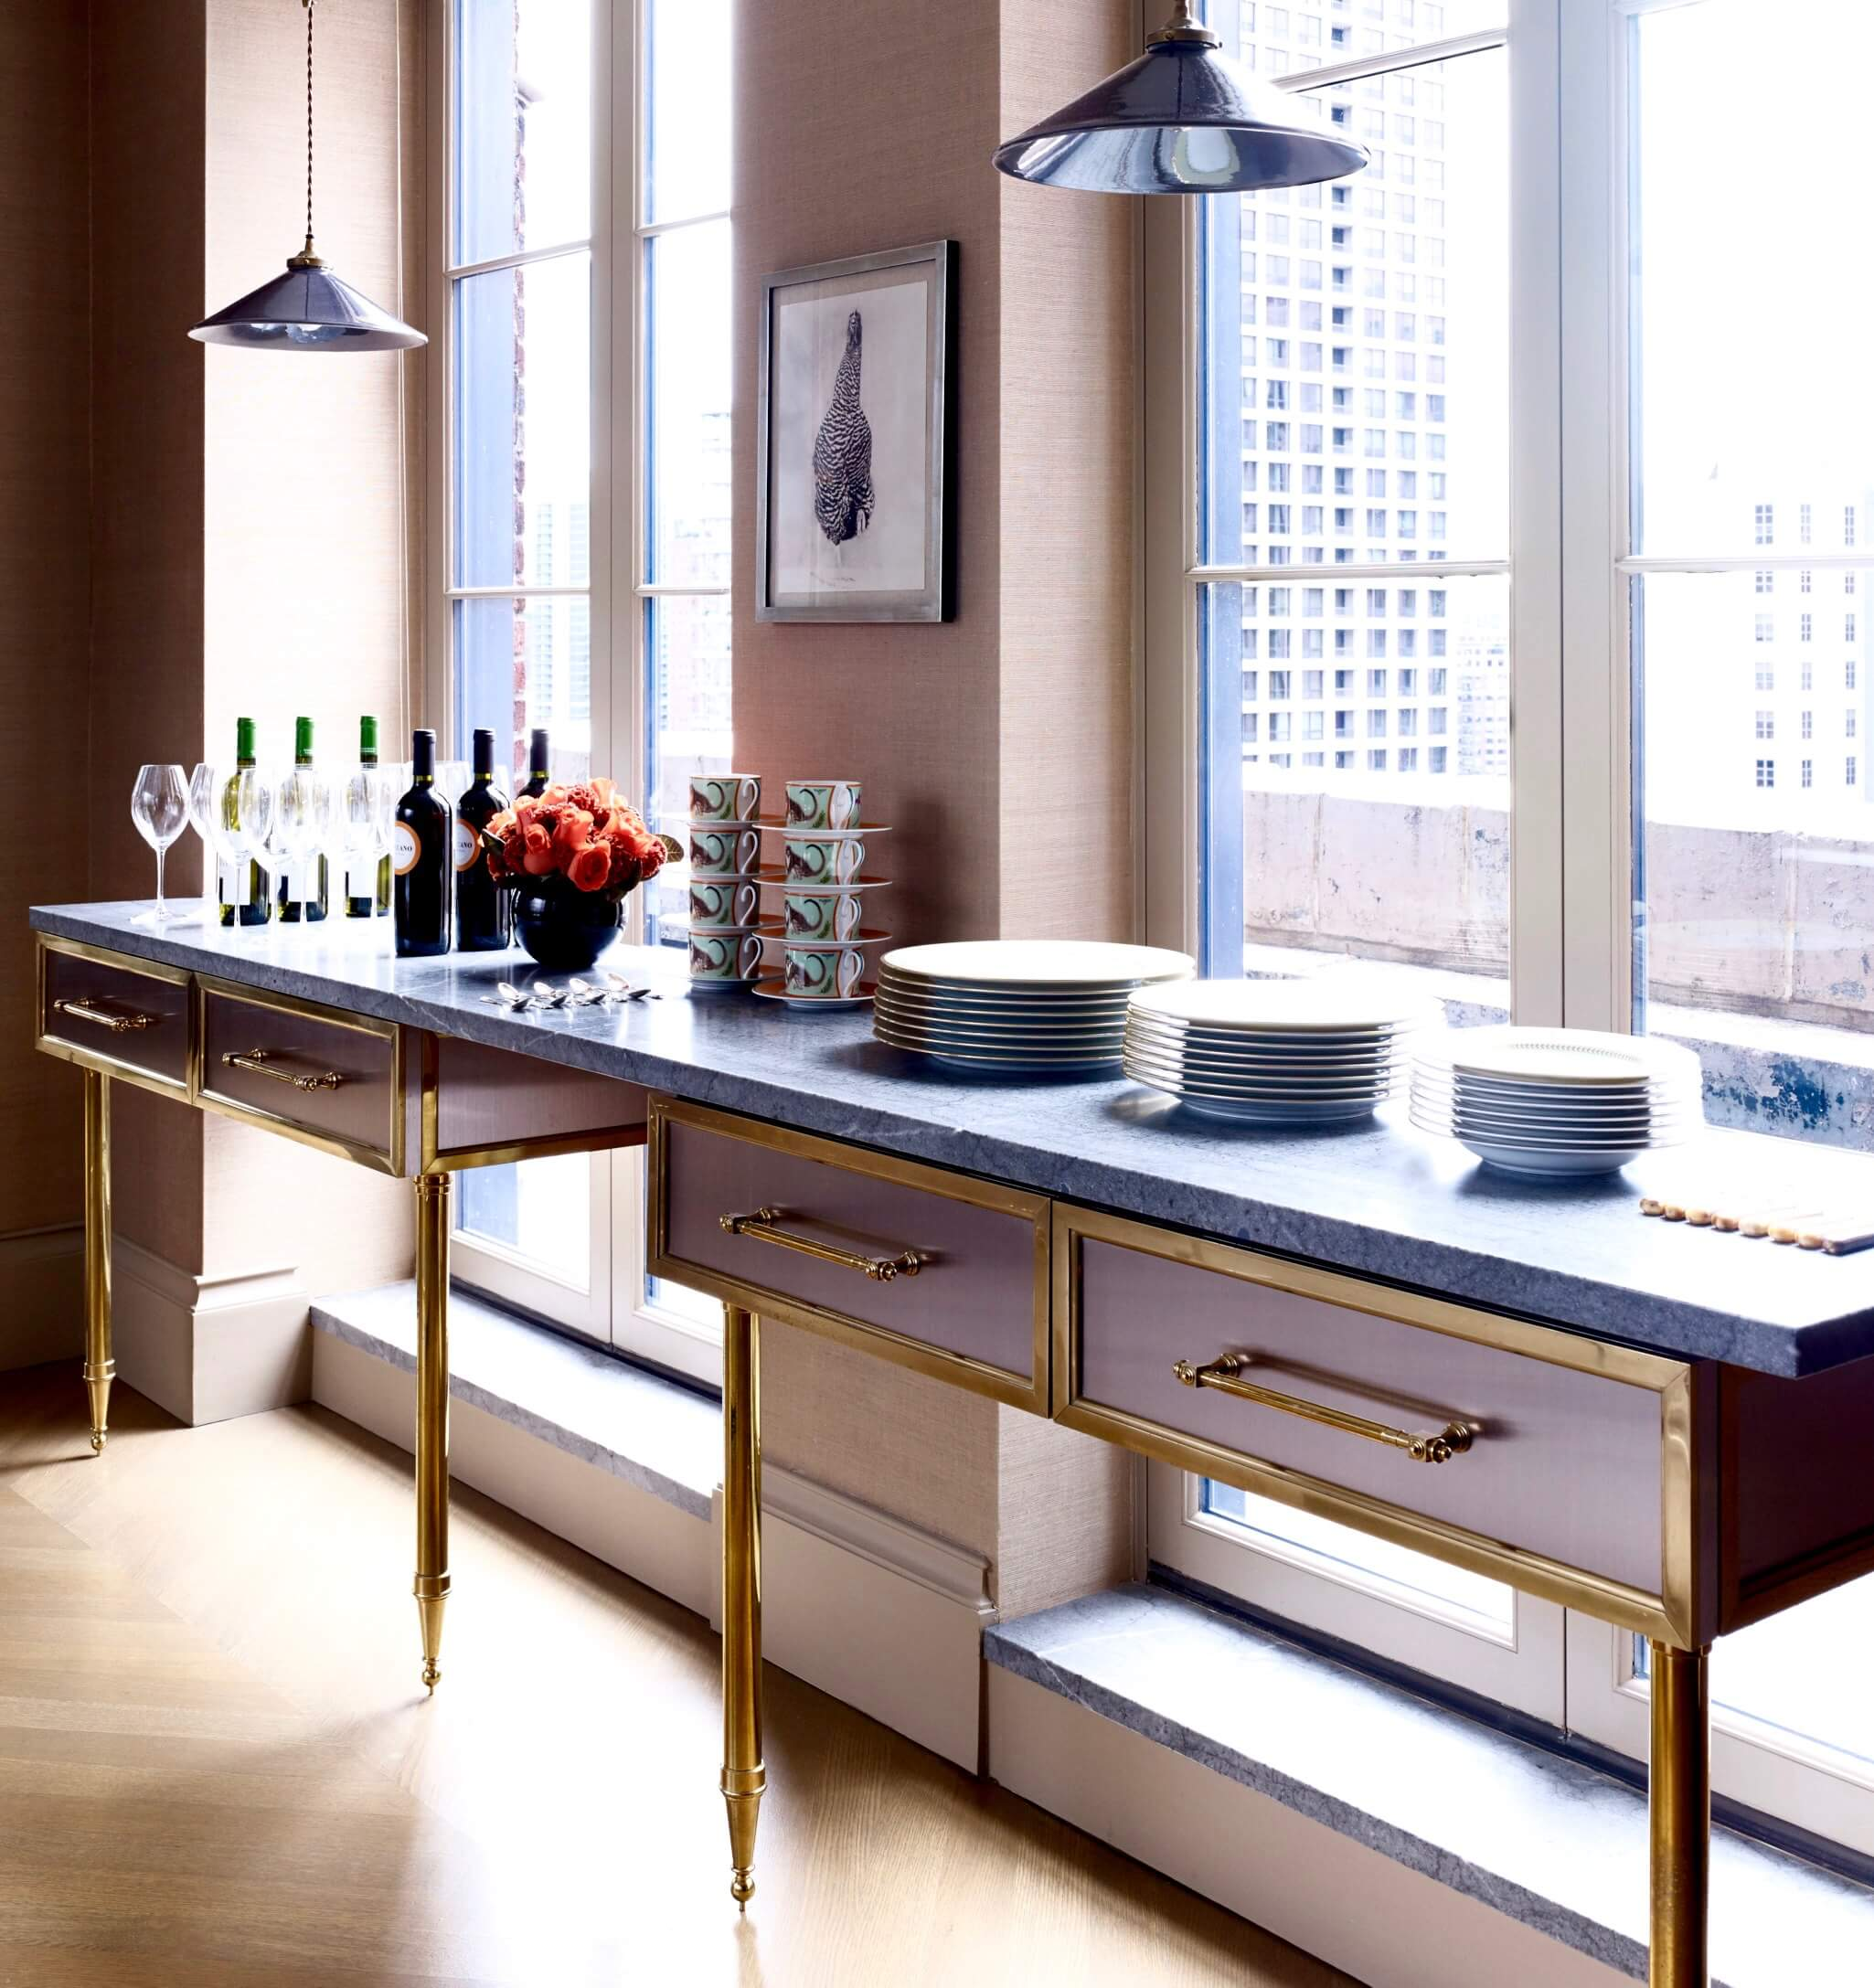 9 20 E CEDAR ST PENTHOUSE KITCHEN BAR 2018.jpg